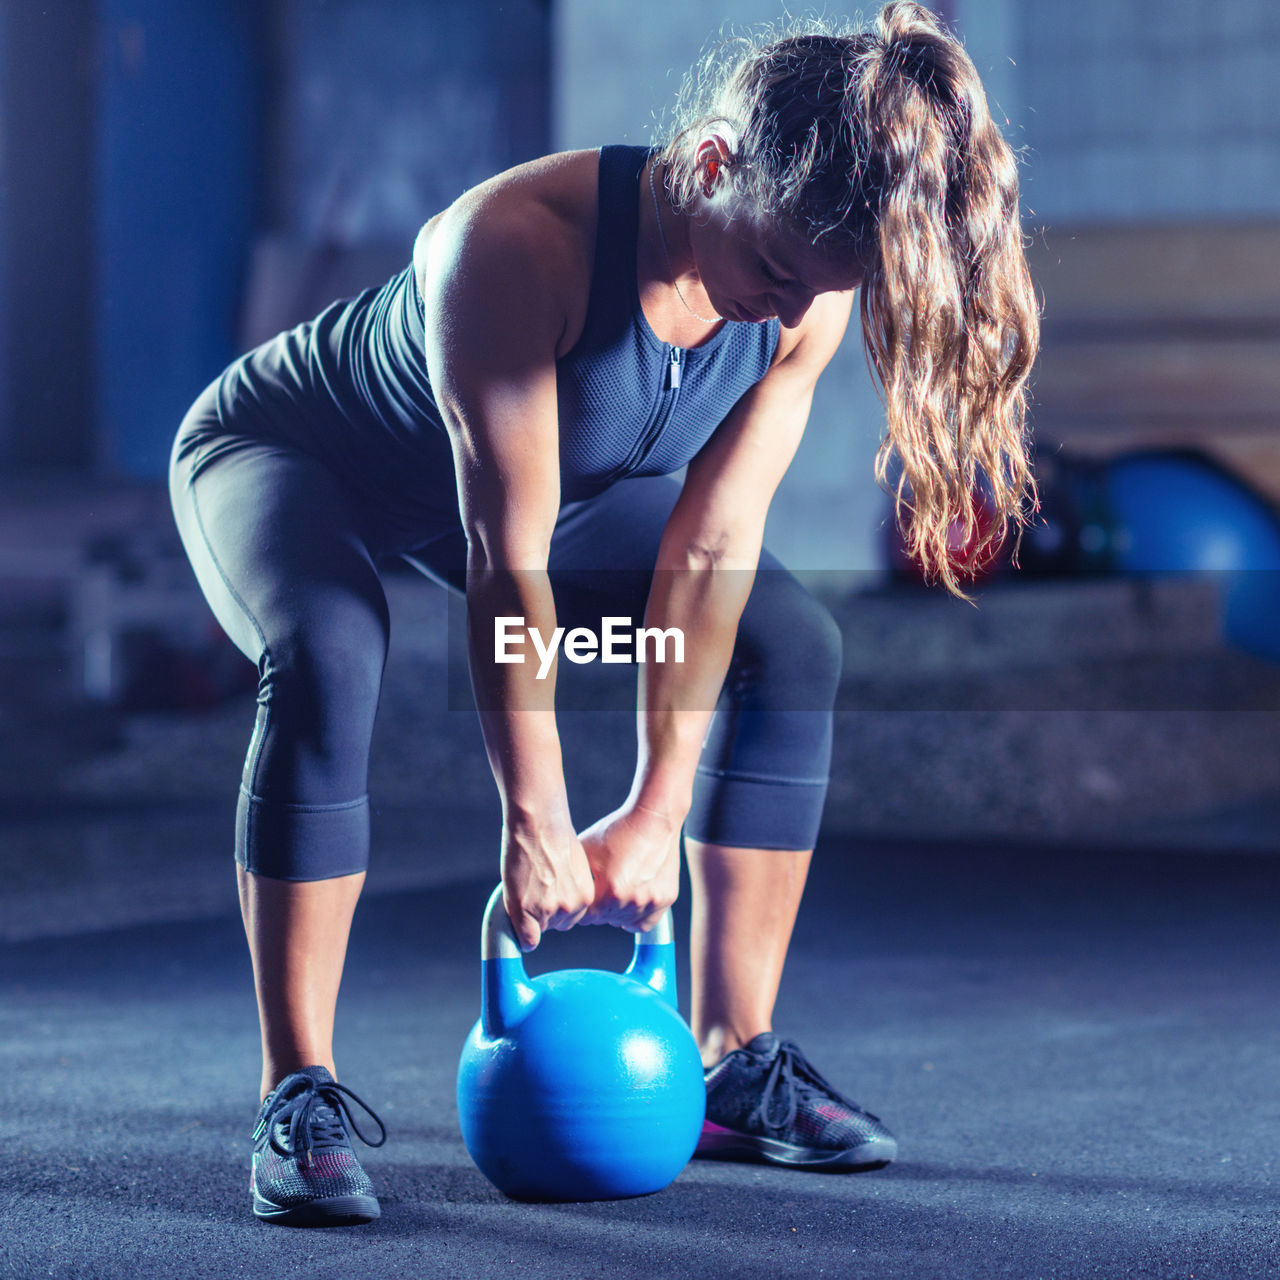 lifestyles, exercising, strength, sport, healthy lifestyle, real people, sports clothing, full length, one person, indoors, young women, sports training, young adult, clothing, muscular build, women, vitality, athlete, focus on foreground, weight training, physical activity, body conscious, effort, beautiful woman